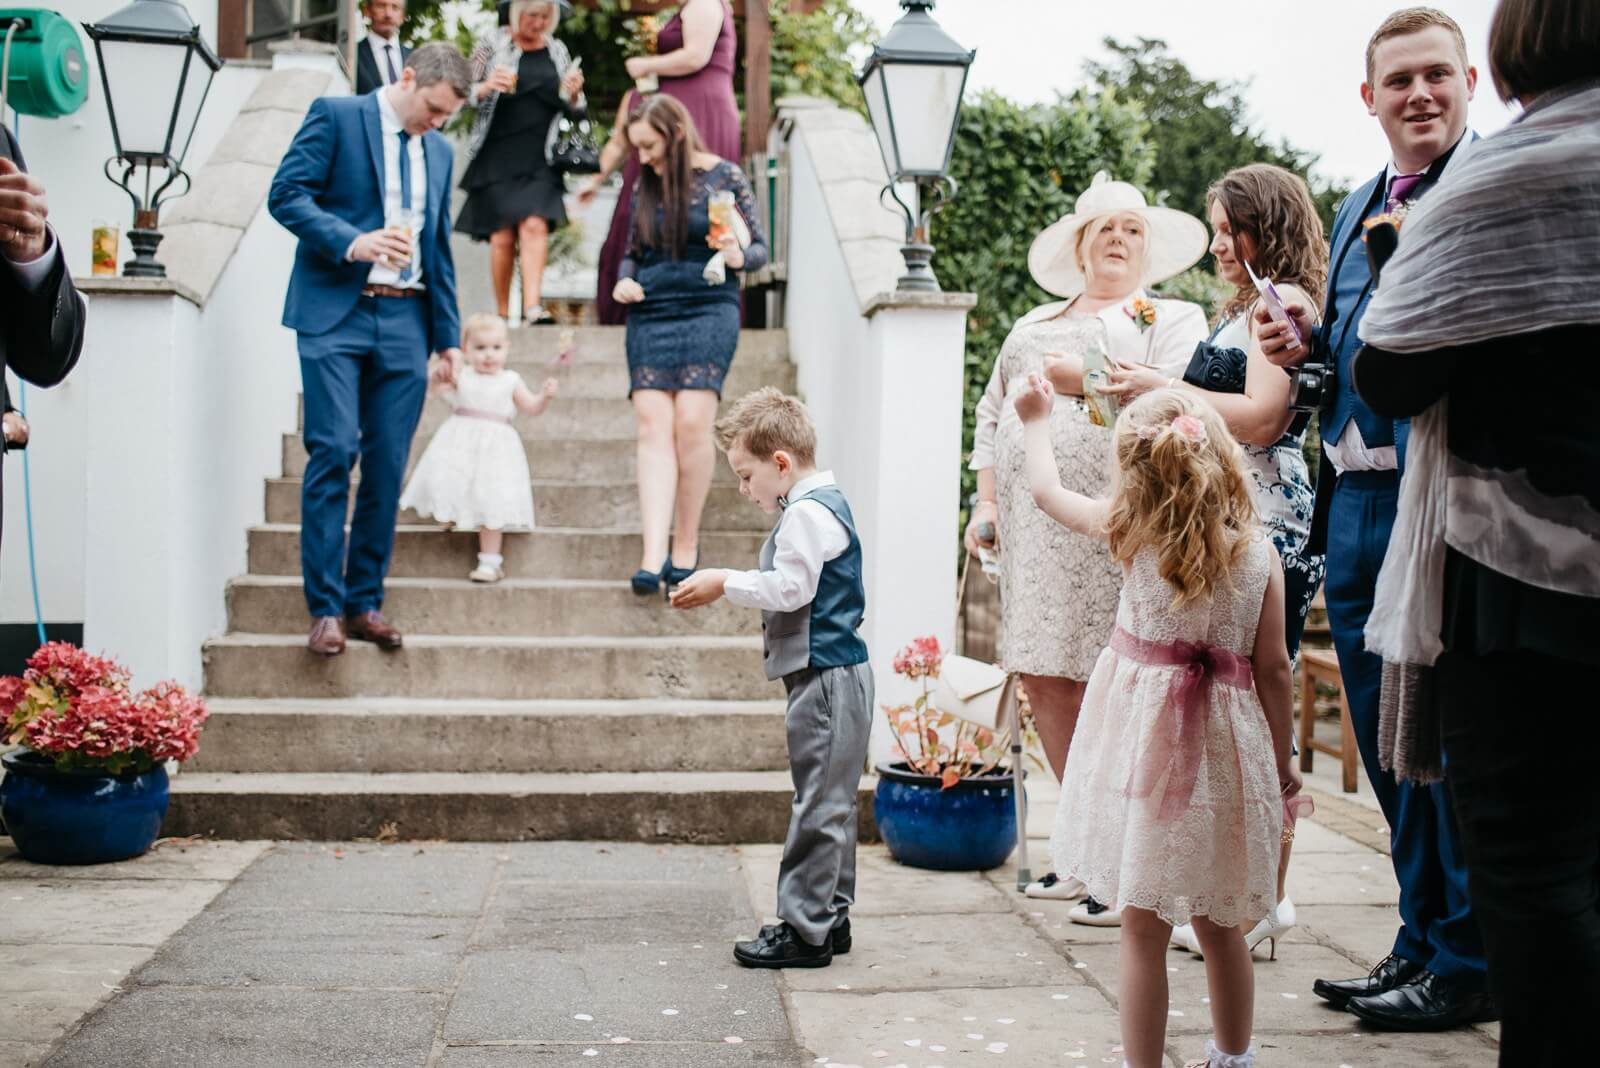 Small groomsman playing with confetti before bride and grooms entrance at Cardiff wedding